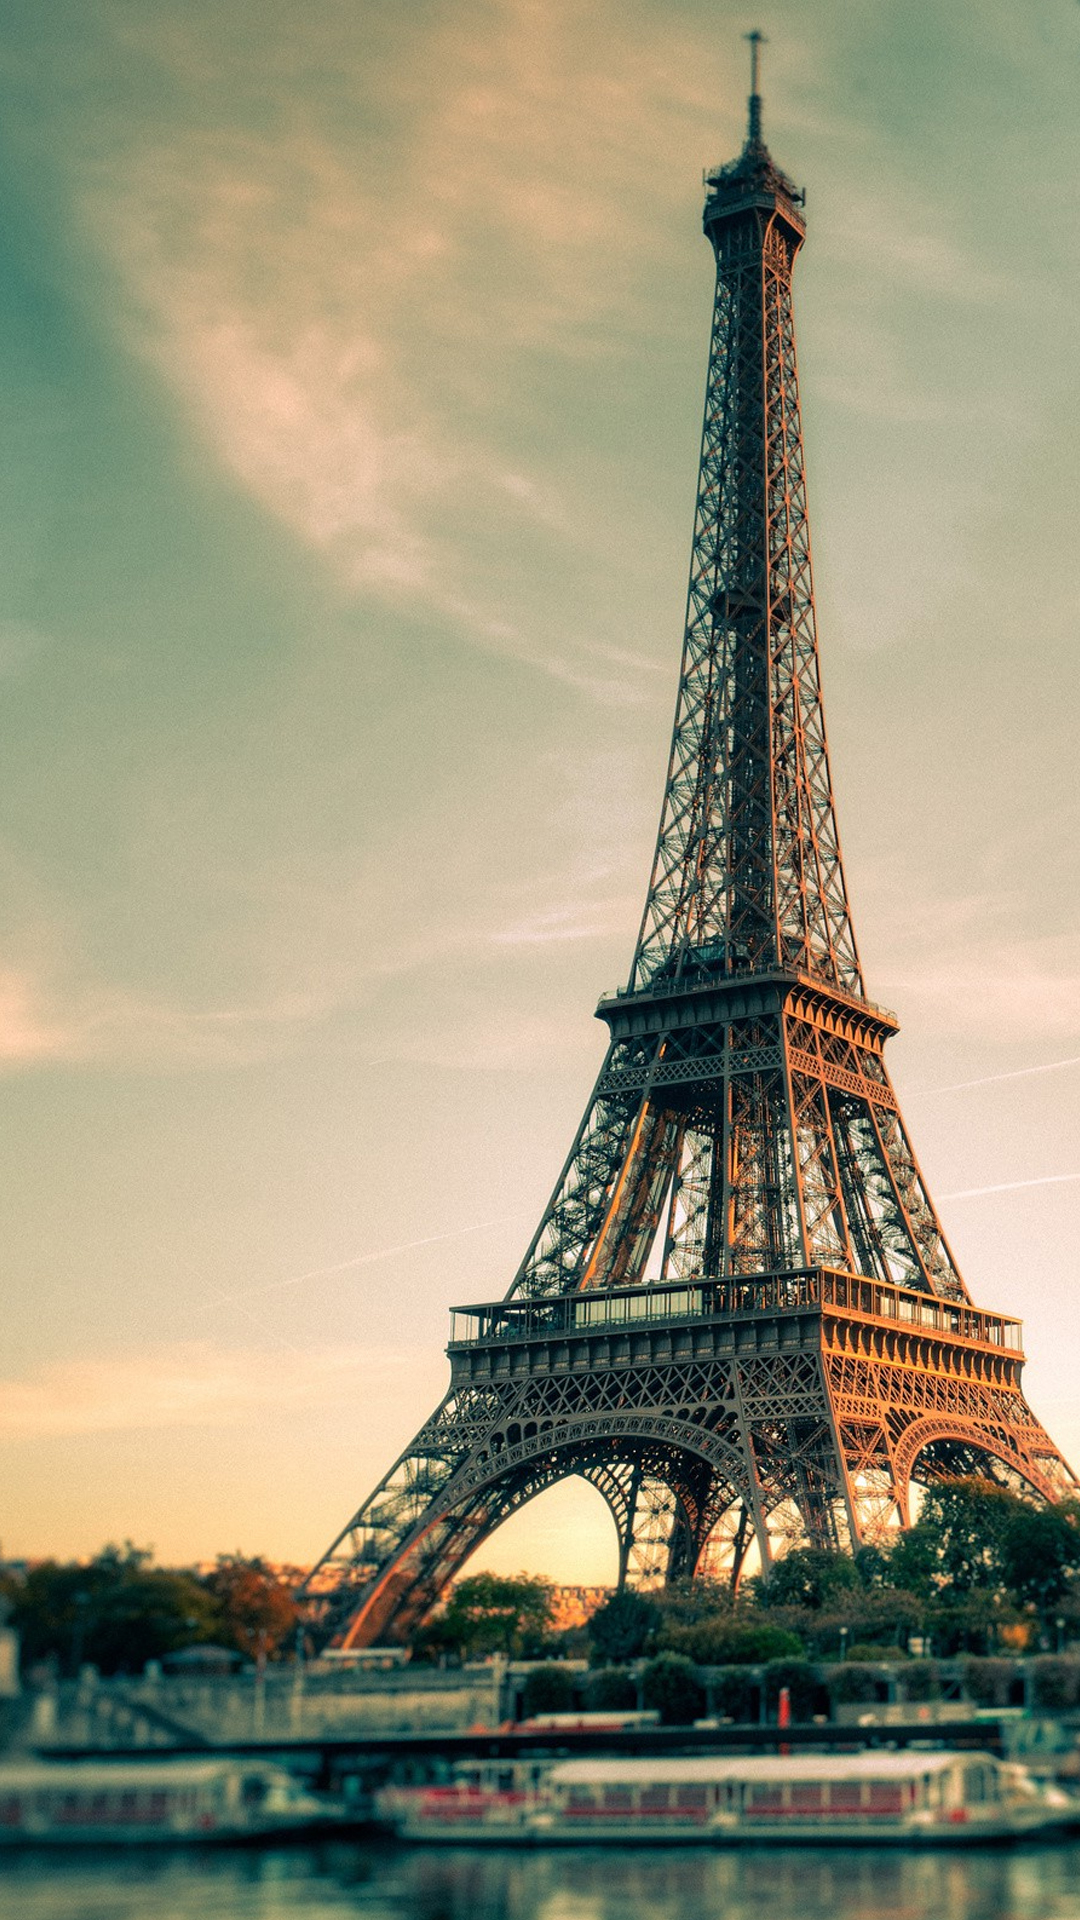 Paris Eiffel Tower Smartphone Hd Wallpapers Getphotos